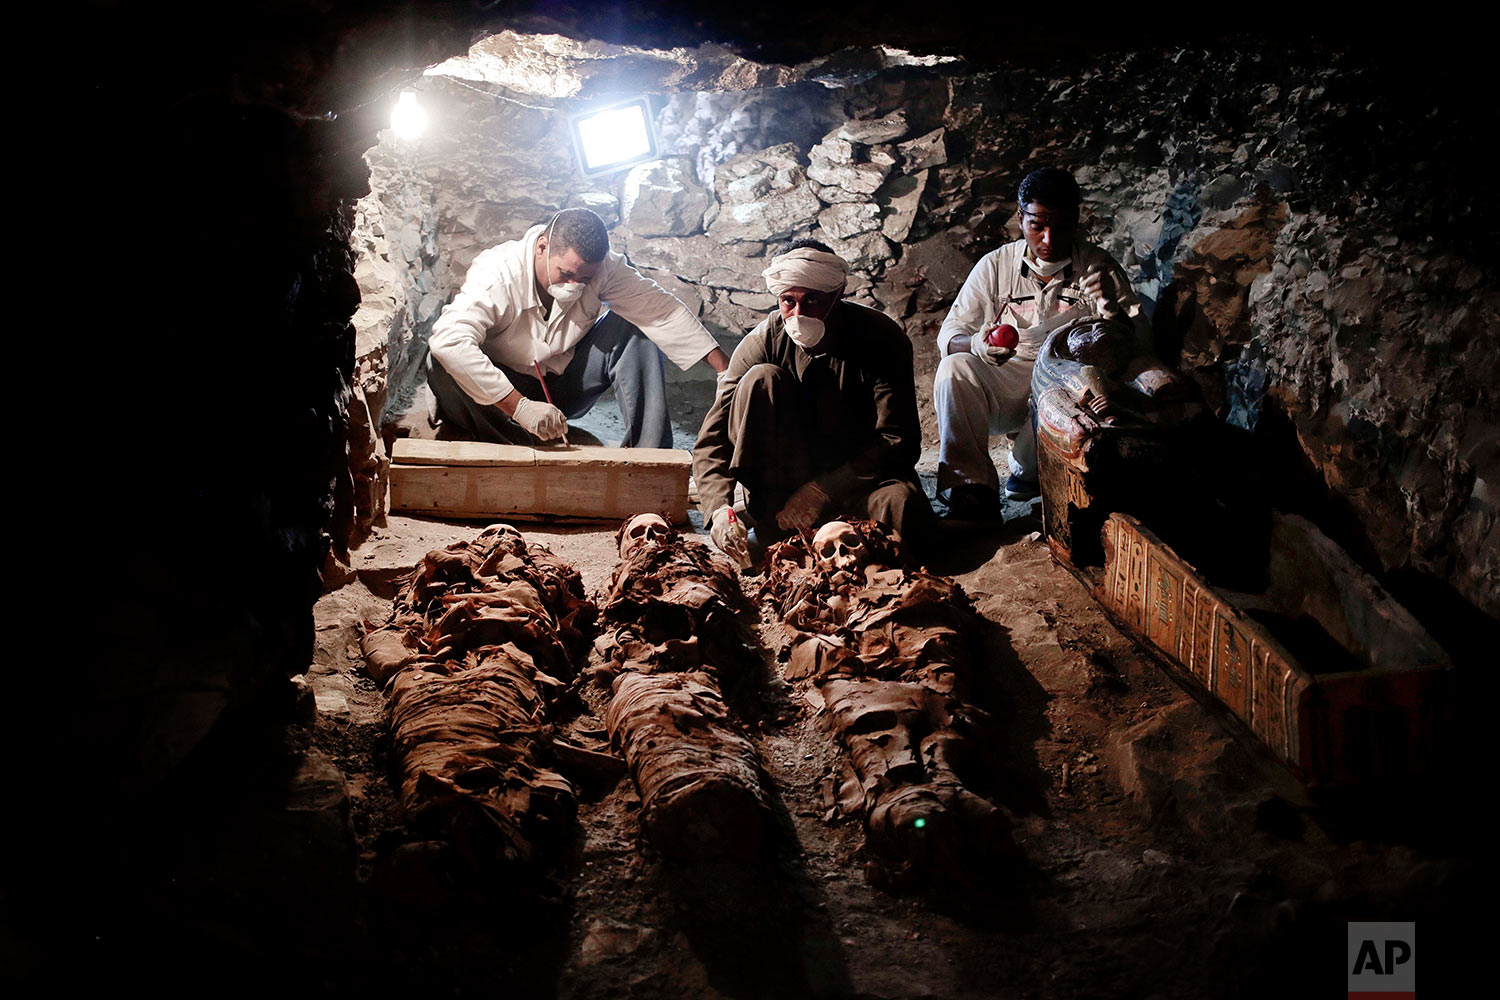 Archaeologists work on mummies found in the New Kingdom tomb that belongs to a royal goldsmith in a burial shaft, in Luxor, Egypt, Saturday, Sept. 9, 2017. Egypt has announced the discovery in the southern city of Luxor of a pharaonic tomb belonging to a royal goldsmith who lived more than 3,500 years ago during the reign of the 18th dynasty. (AP Photo/Nariman El-Mofty)